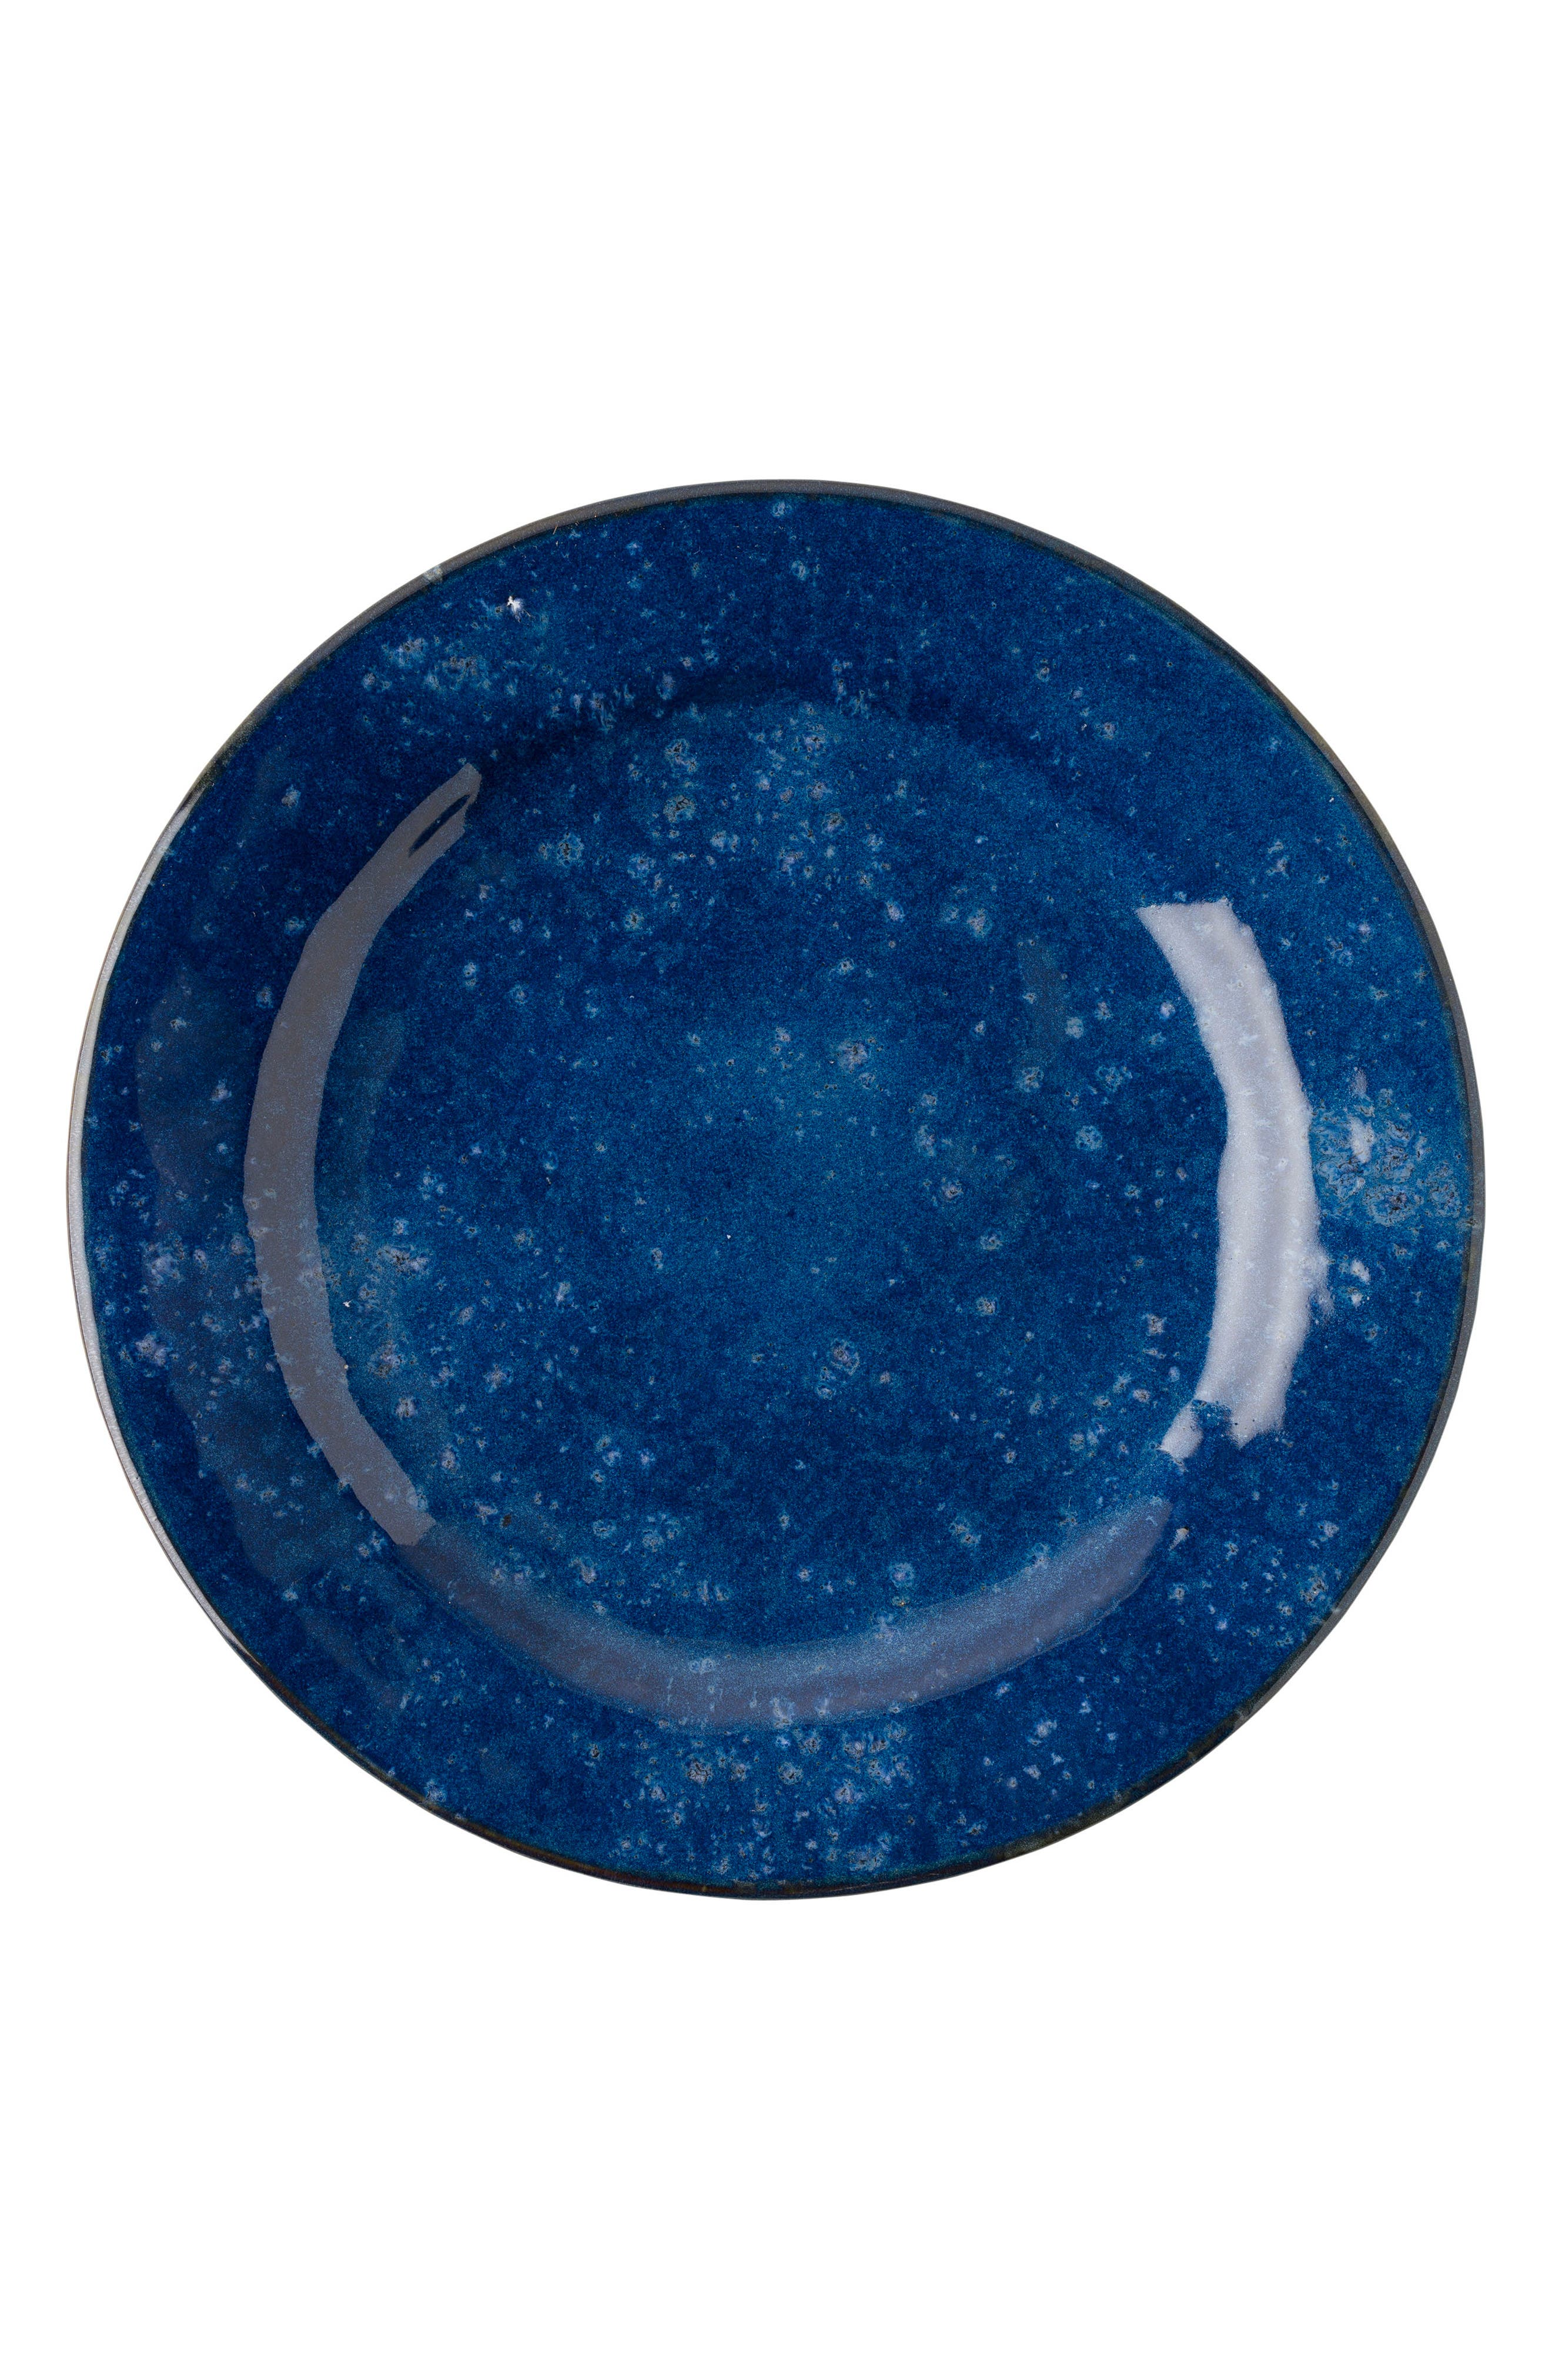 Puro Cobalt Ceramic Dinner Plate,                         Main,                         color, Dappled Cobalt